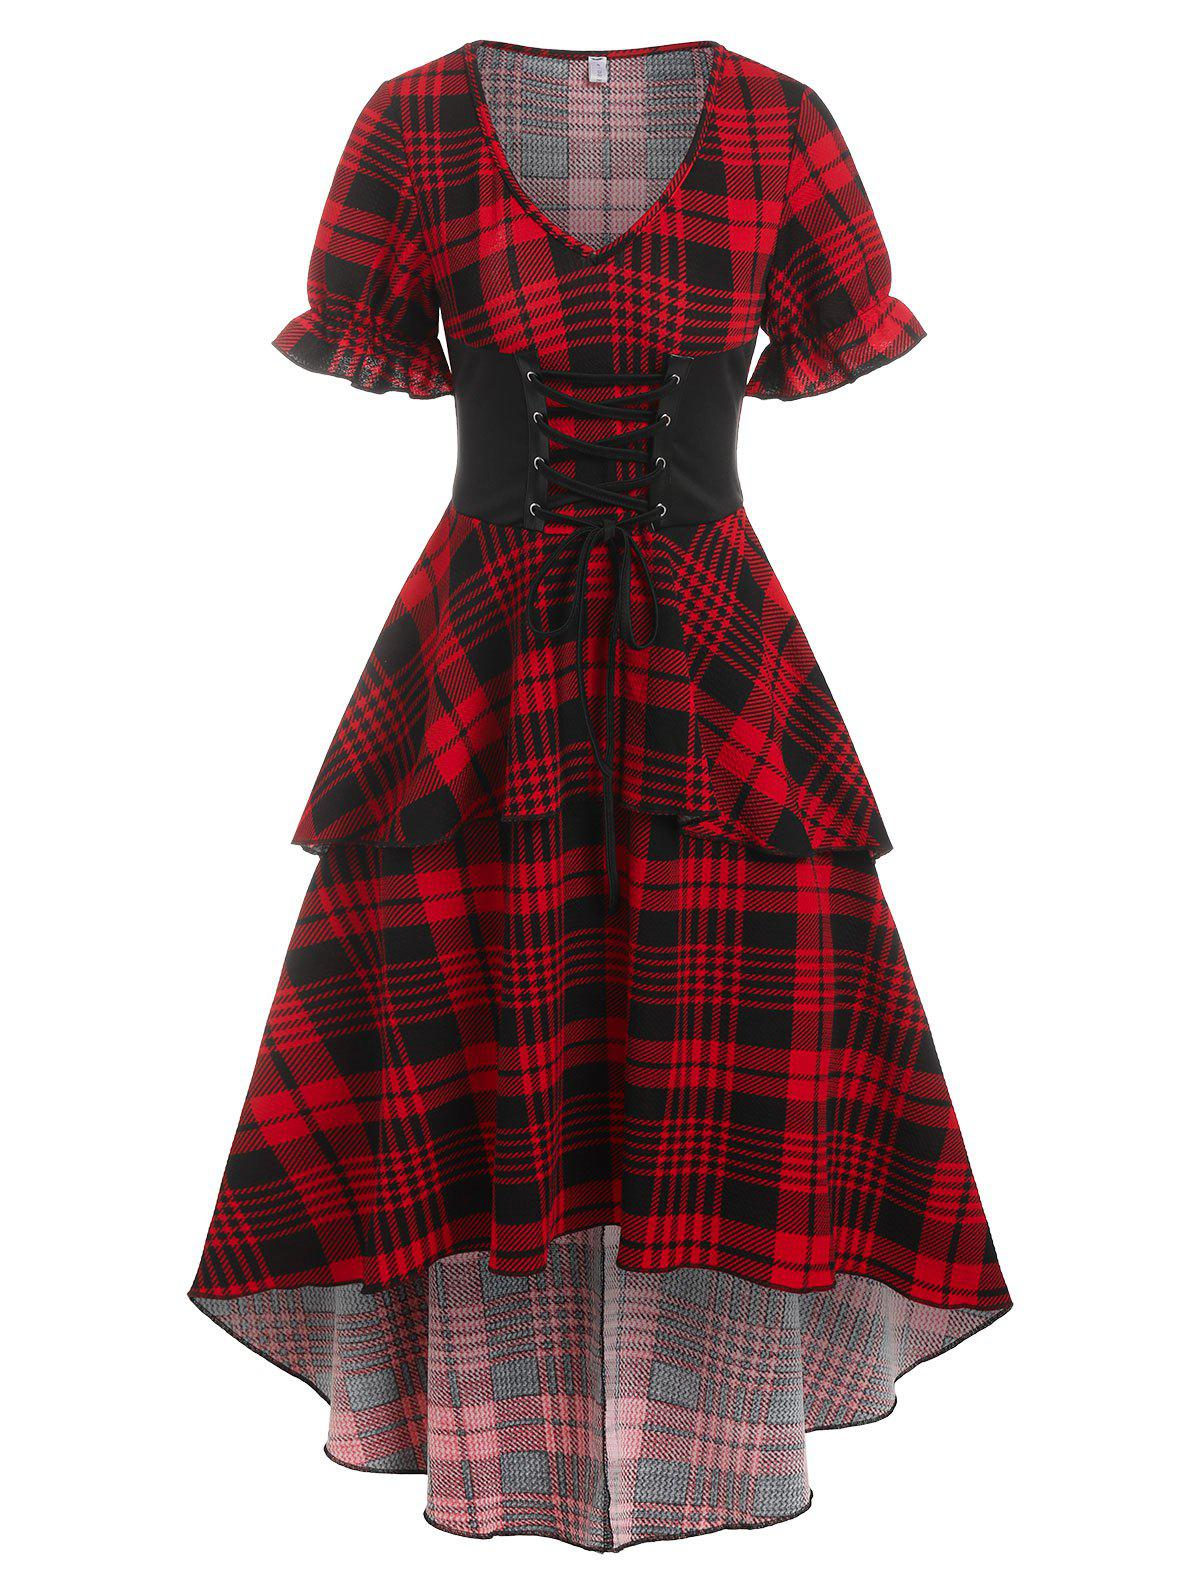 Checked Lace Up Poet Sleeve Layered Dress - DEEP RED 2XL